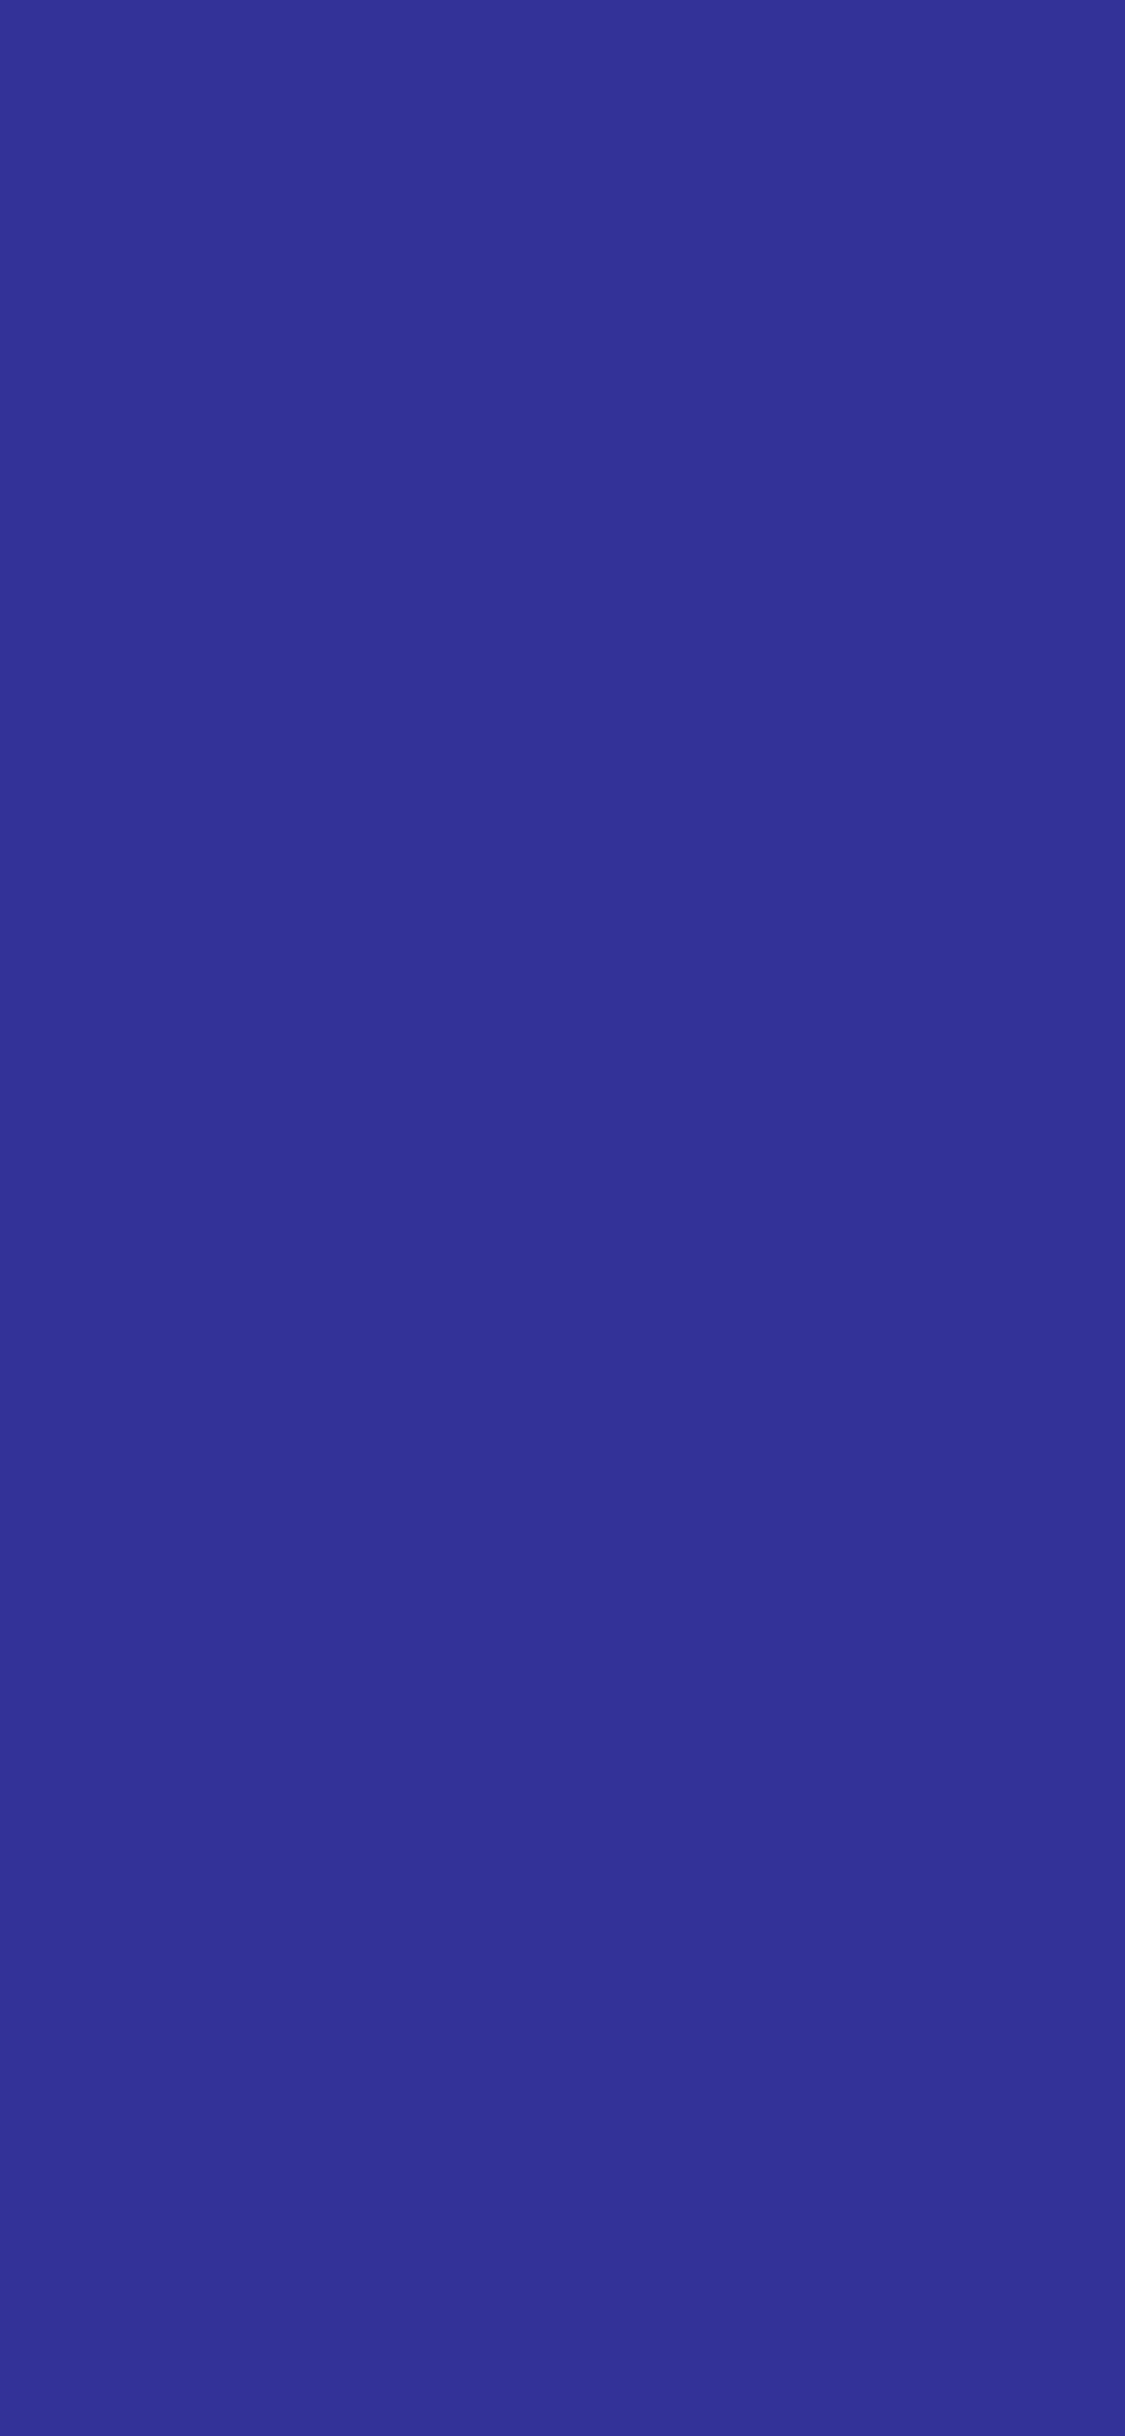 1125x2436 Blue Pigment Solid Color Background